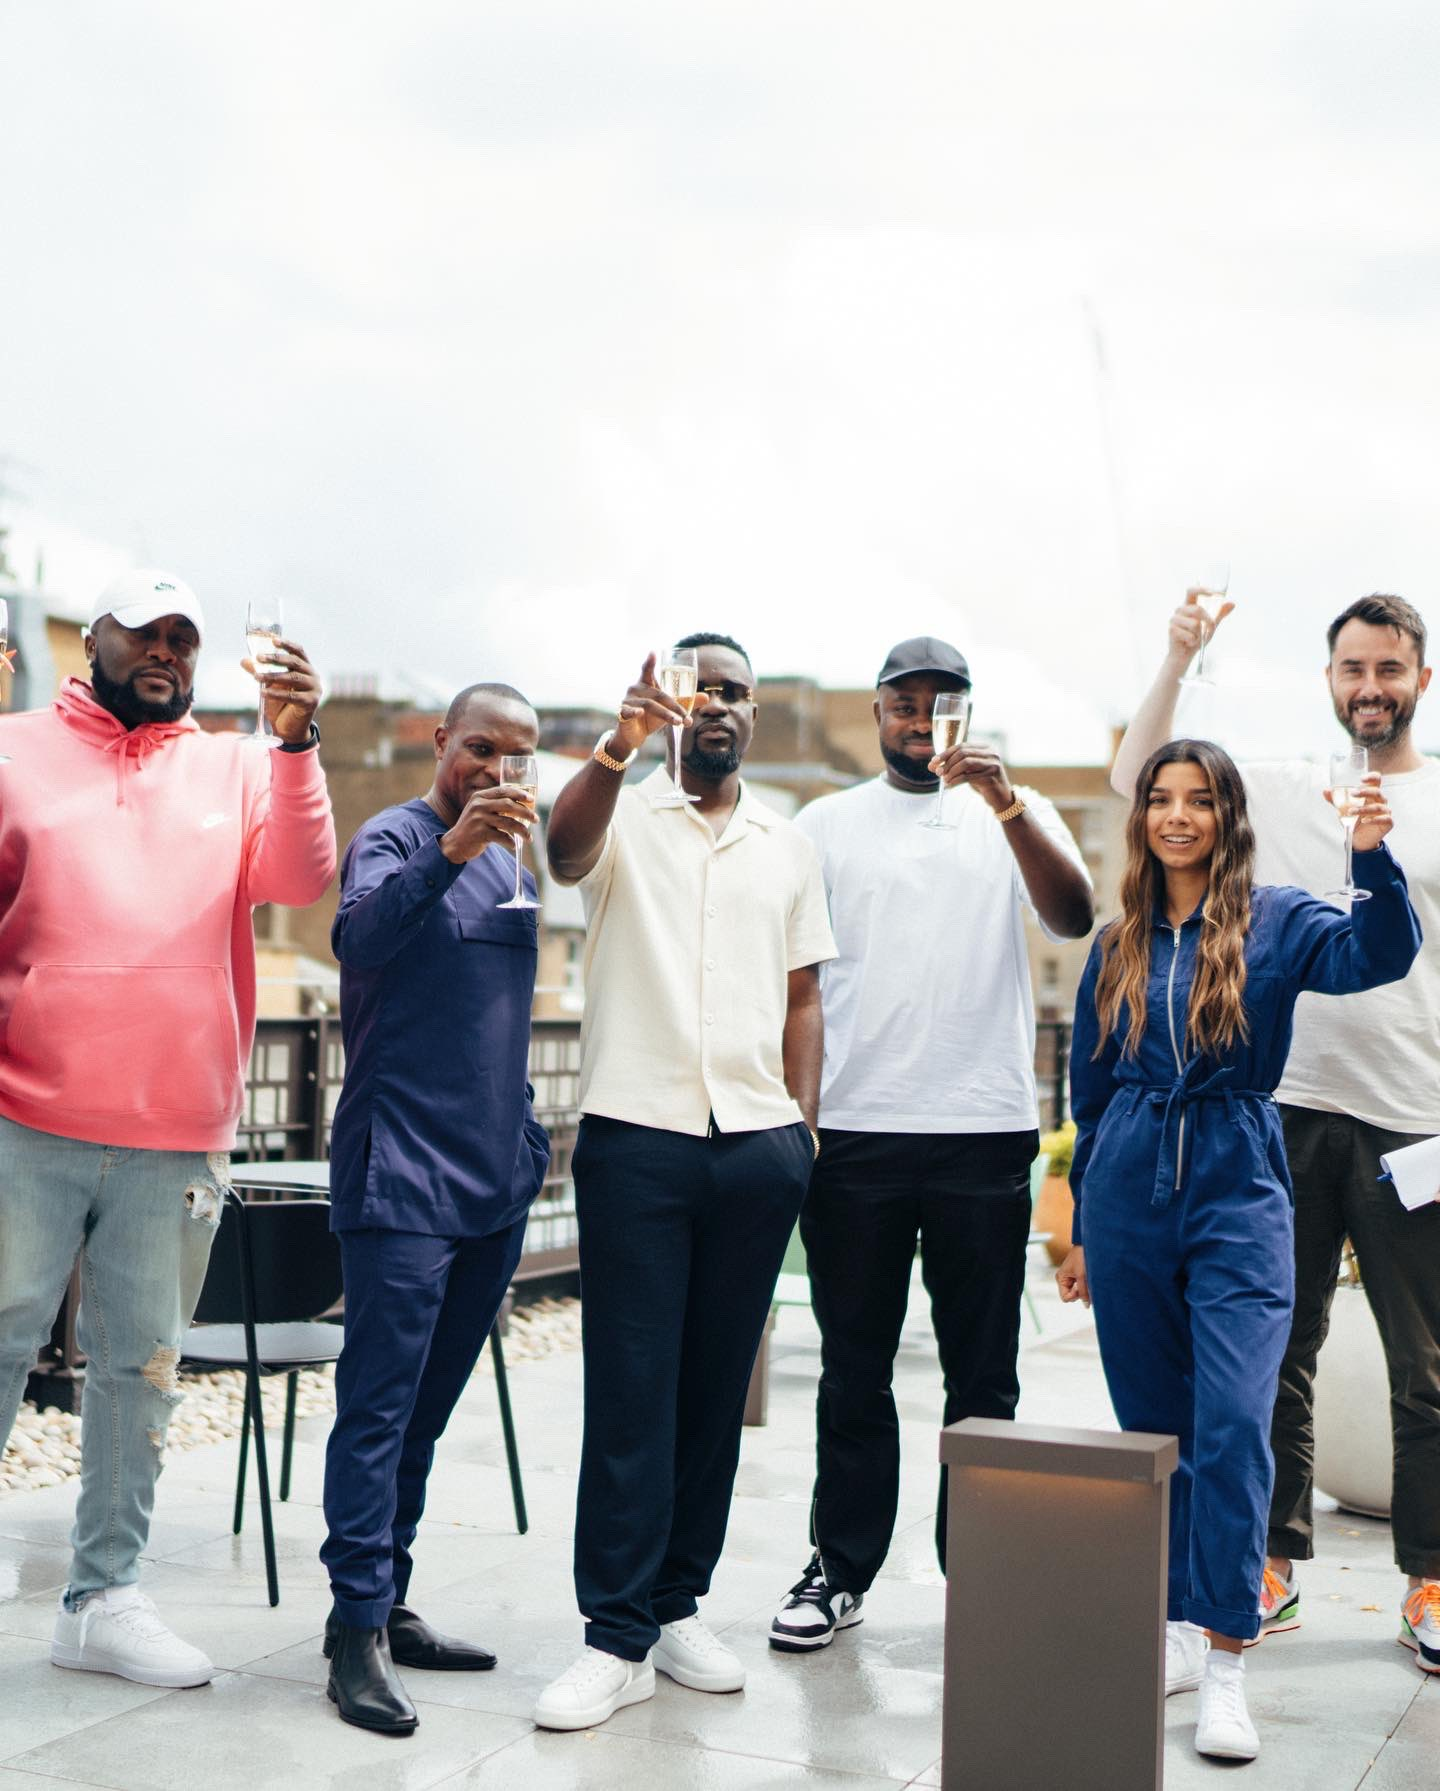 """Rapper Sarkodie signs new deal with Sony Music Publishing UK. His caption on Twitter: """"Officially part of the SMP @SonyMusicPubUK family"""